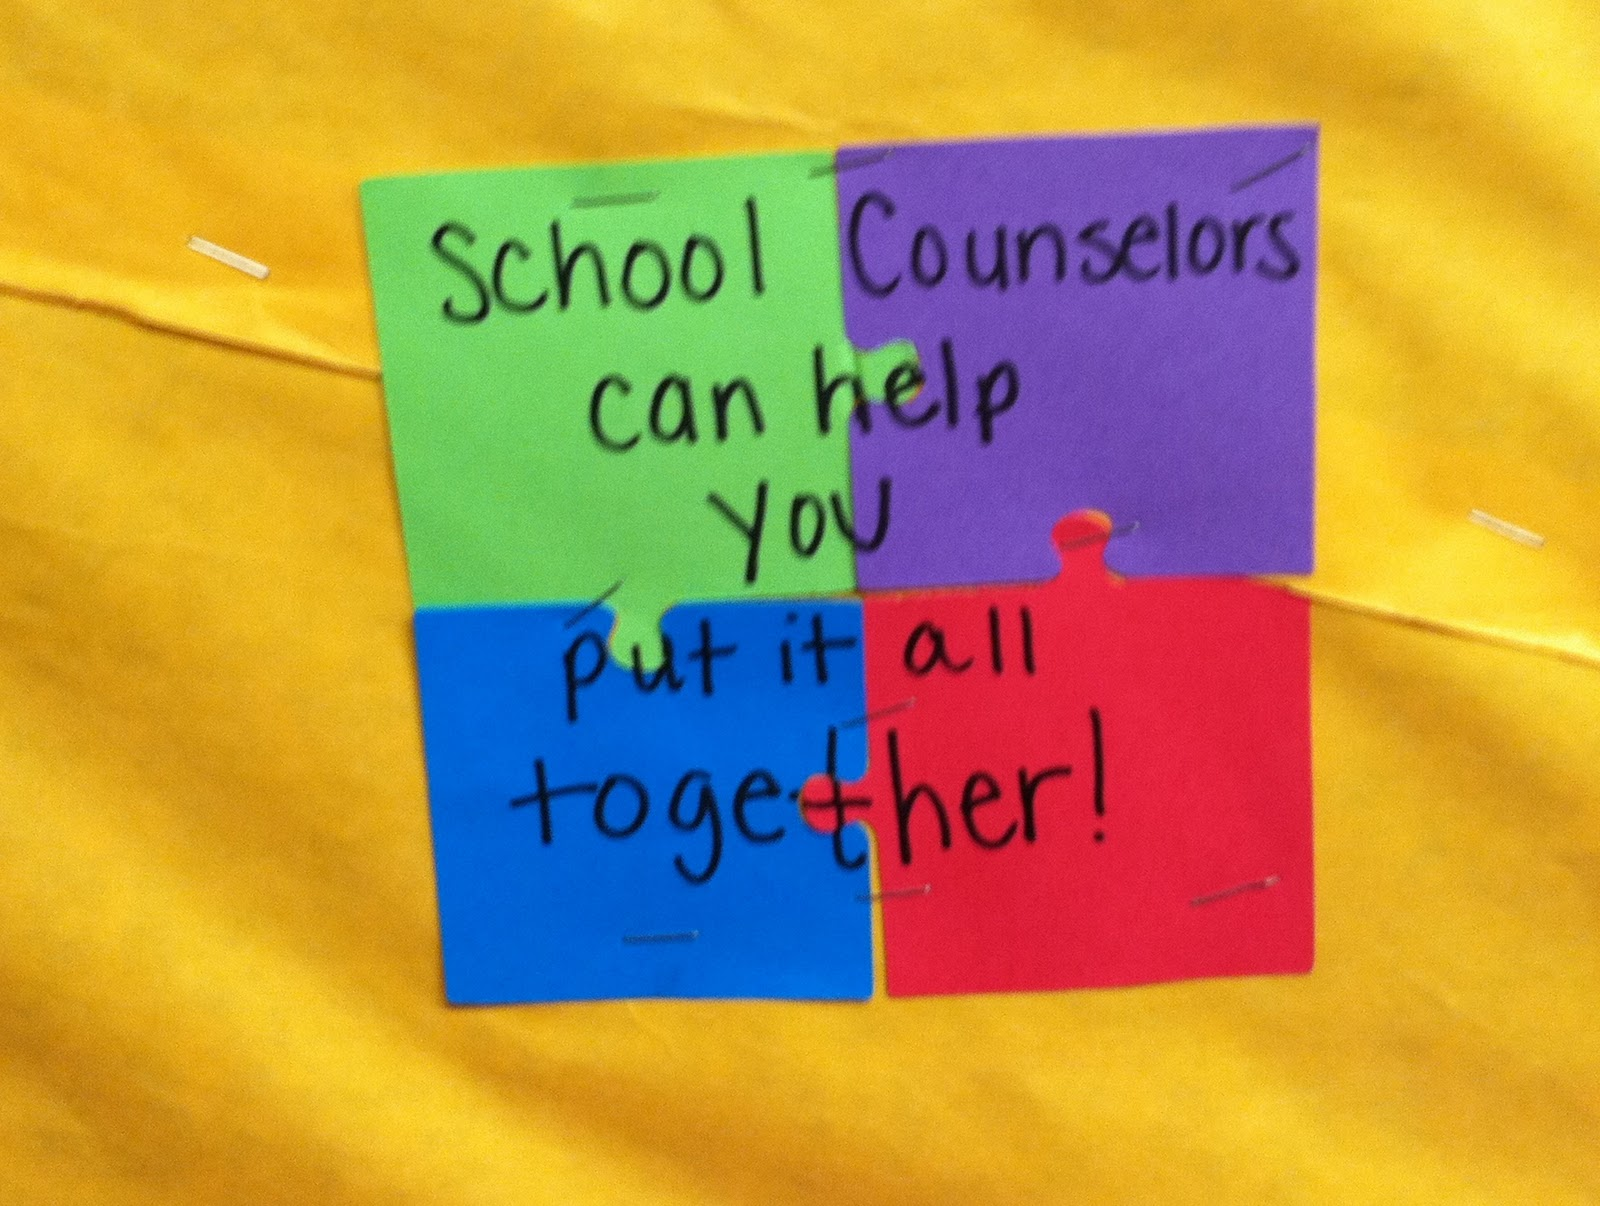 School Counselor Blog: Feeling PUZZLED? School Counselors Can Help.